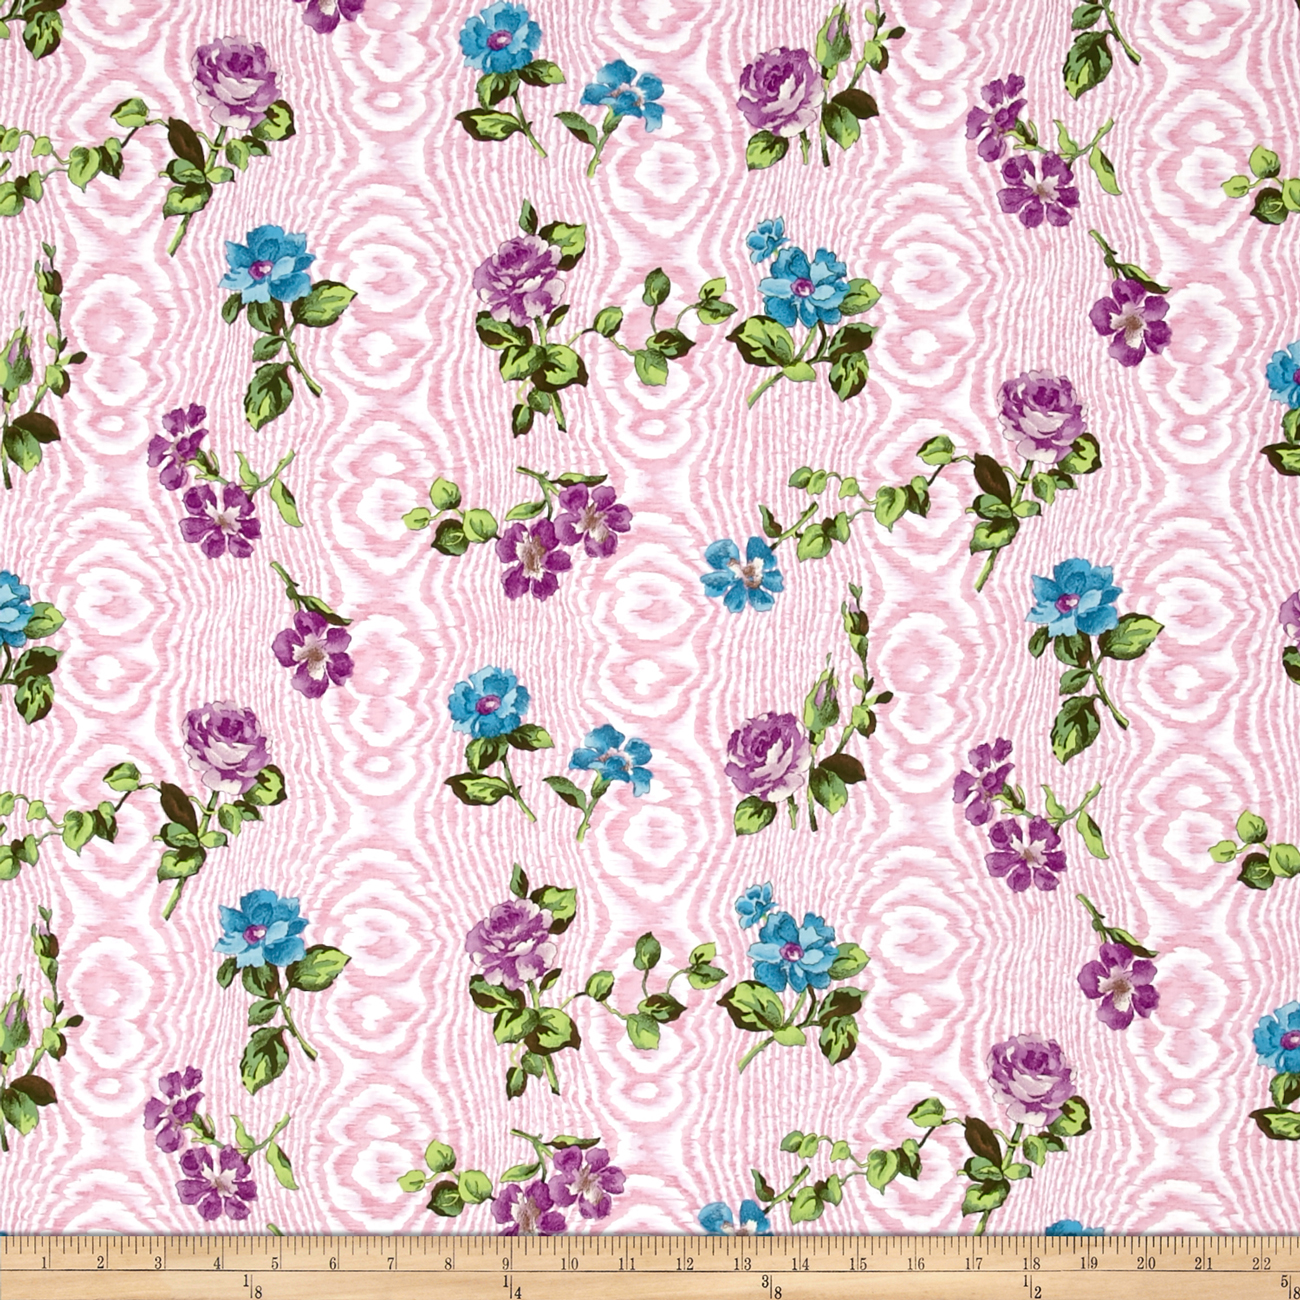 Tracy Porter Ardienne Tossed Floral Pink Fabric by Clothworks in USA